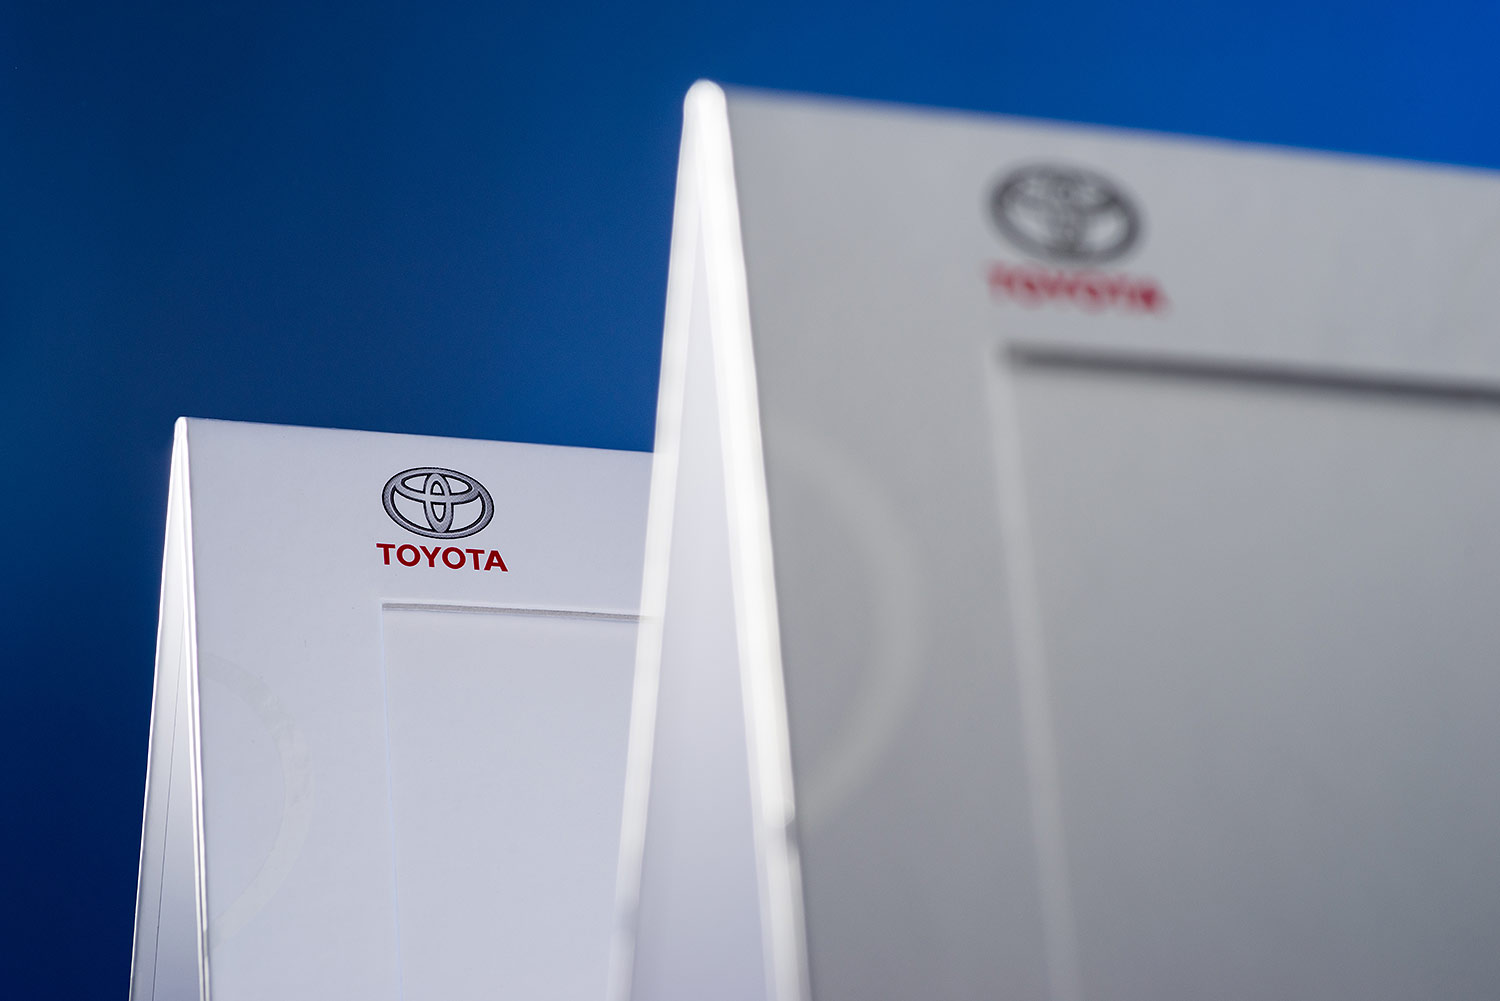 Сardboard photo frames with logo TOYOTA